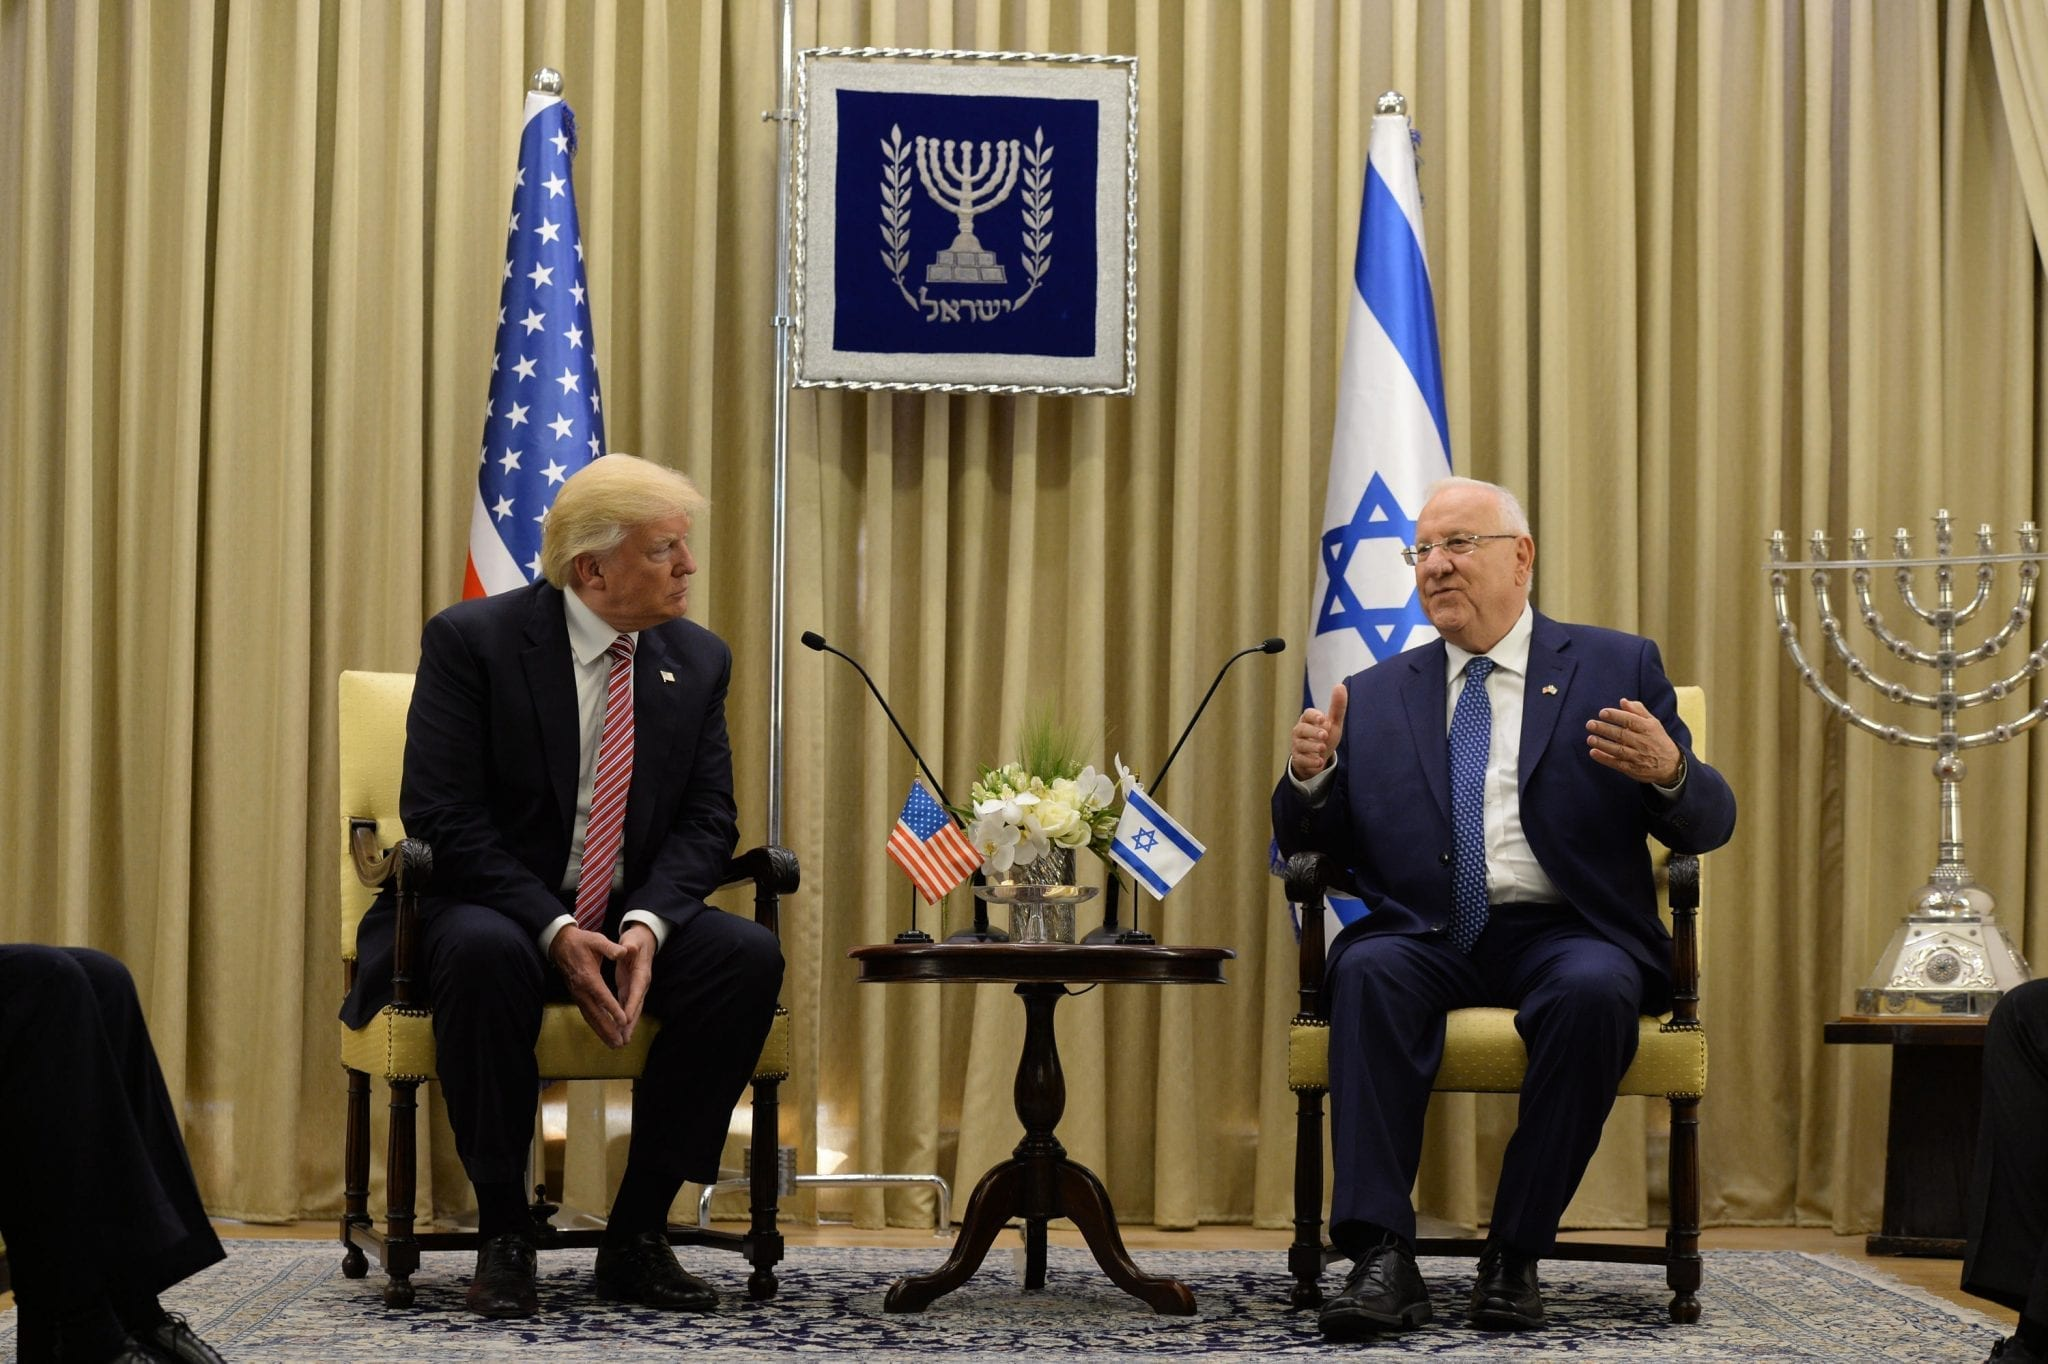 President of Israel, Reuven Rivlin, and the President of the United States, Donald Trump, in Mishkan HaNassi, the official residence of the President of Israel in Jerusalem; image by By חיים צח Government Press Office of Israel - Haim Zach, CC BY-SA 4.0, via Wikimedia Commons, no changes.